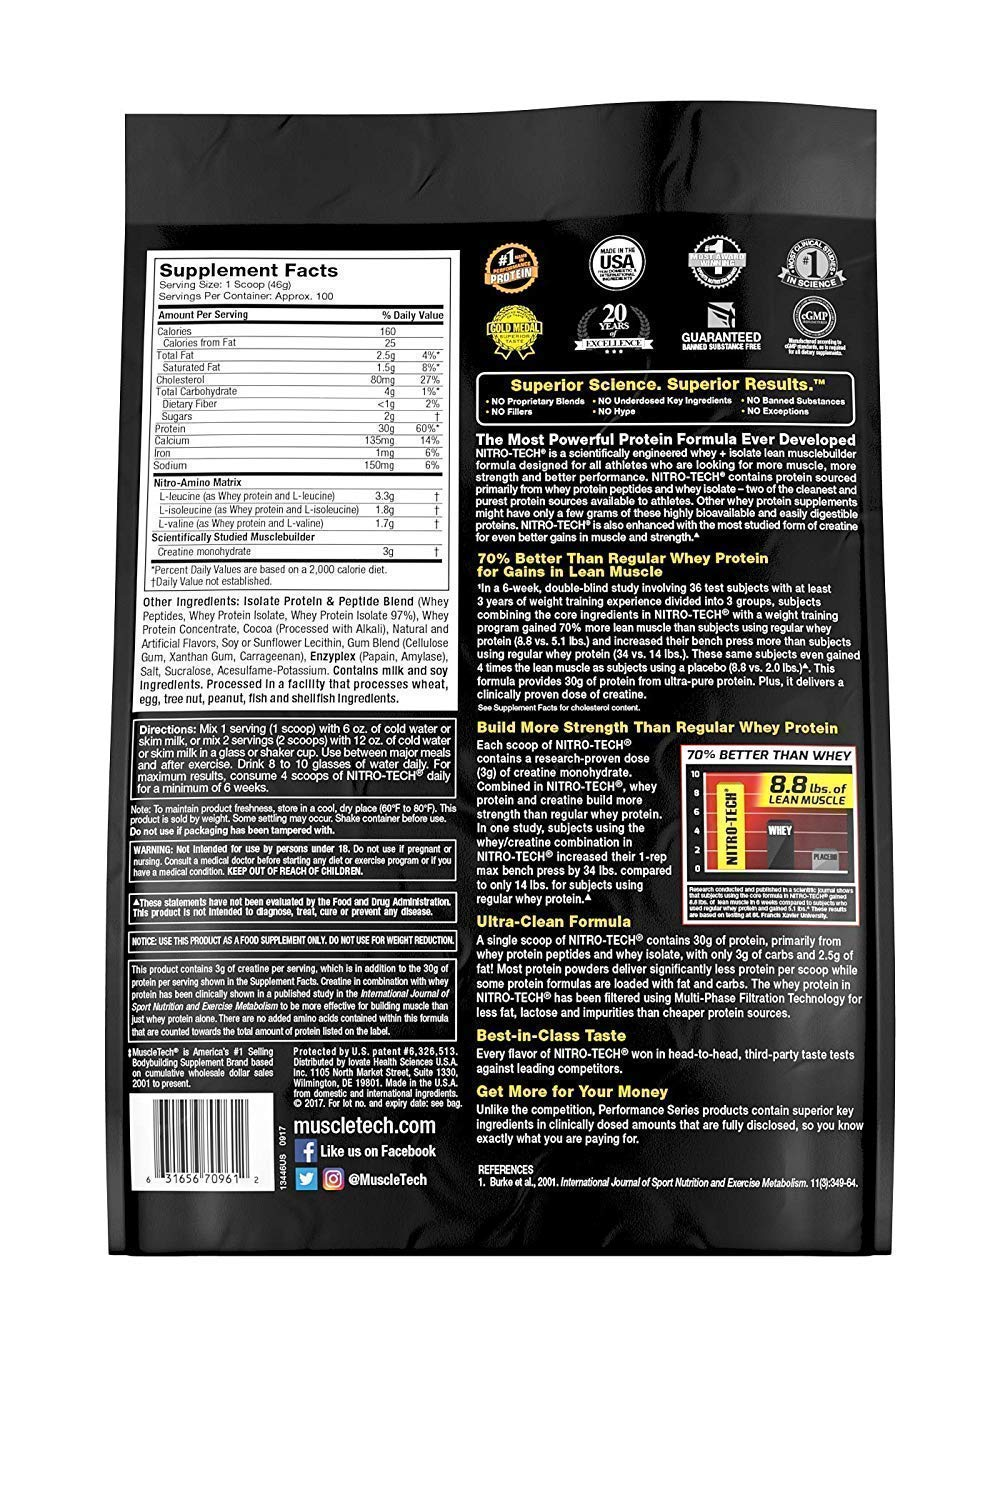 MuscleTech NitroTech Protein Powder Plus Muscle Builder, 100% Whey Protein with Whey Isolate, Milk Chocolate, 103 Servings (10lbs) by MuscleTech (Image #3)